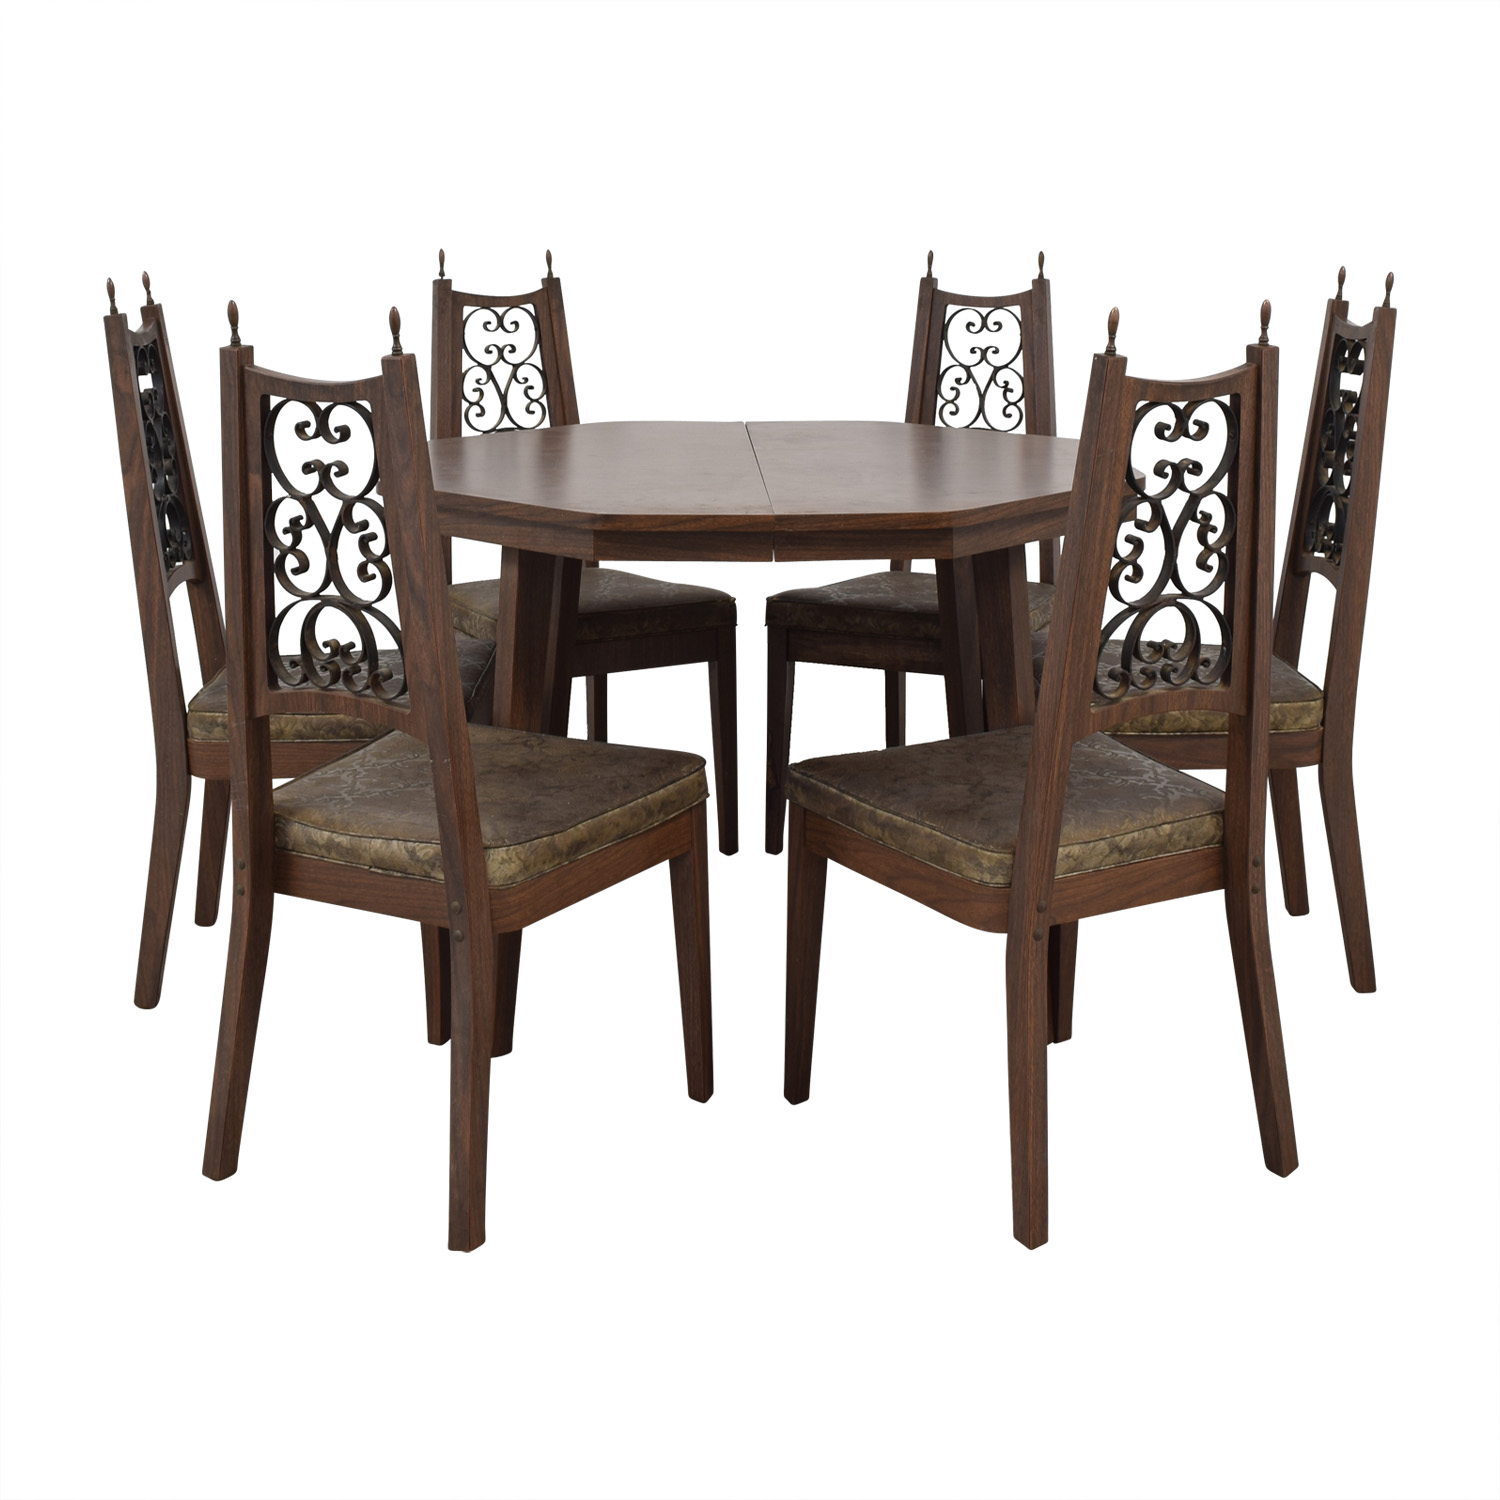 Octagon Extendable Leaf Dining Set / Sofas